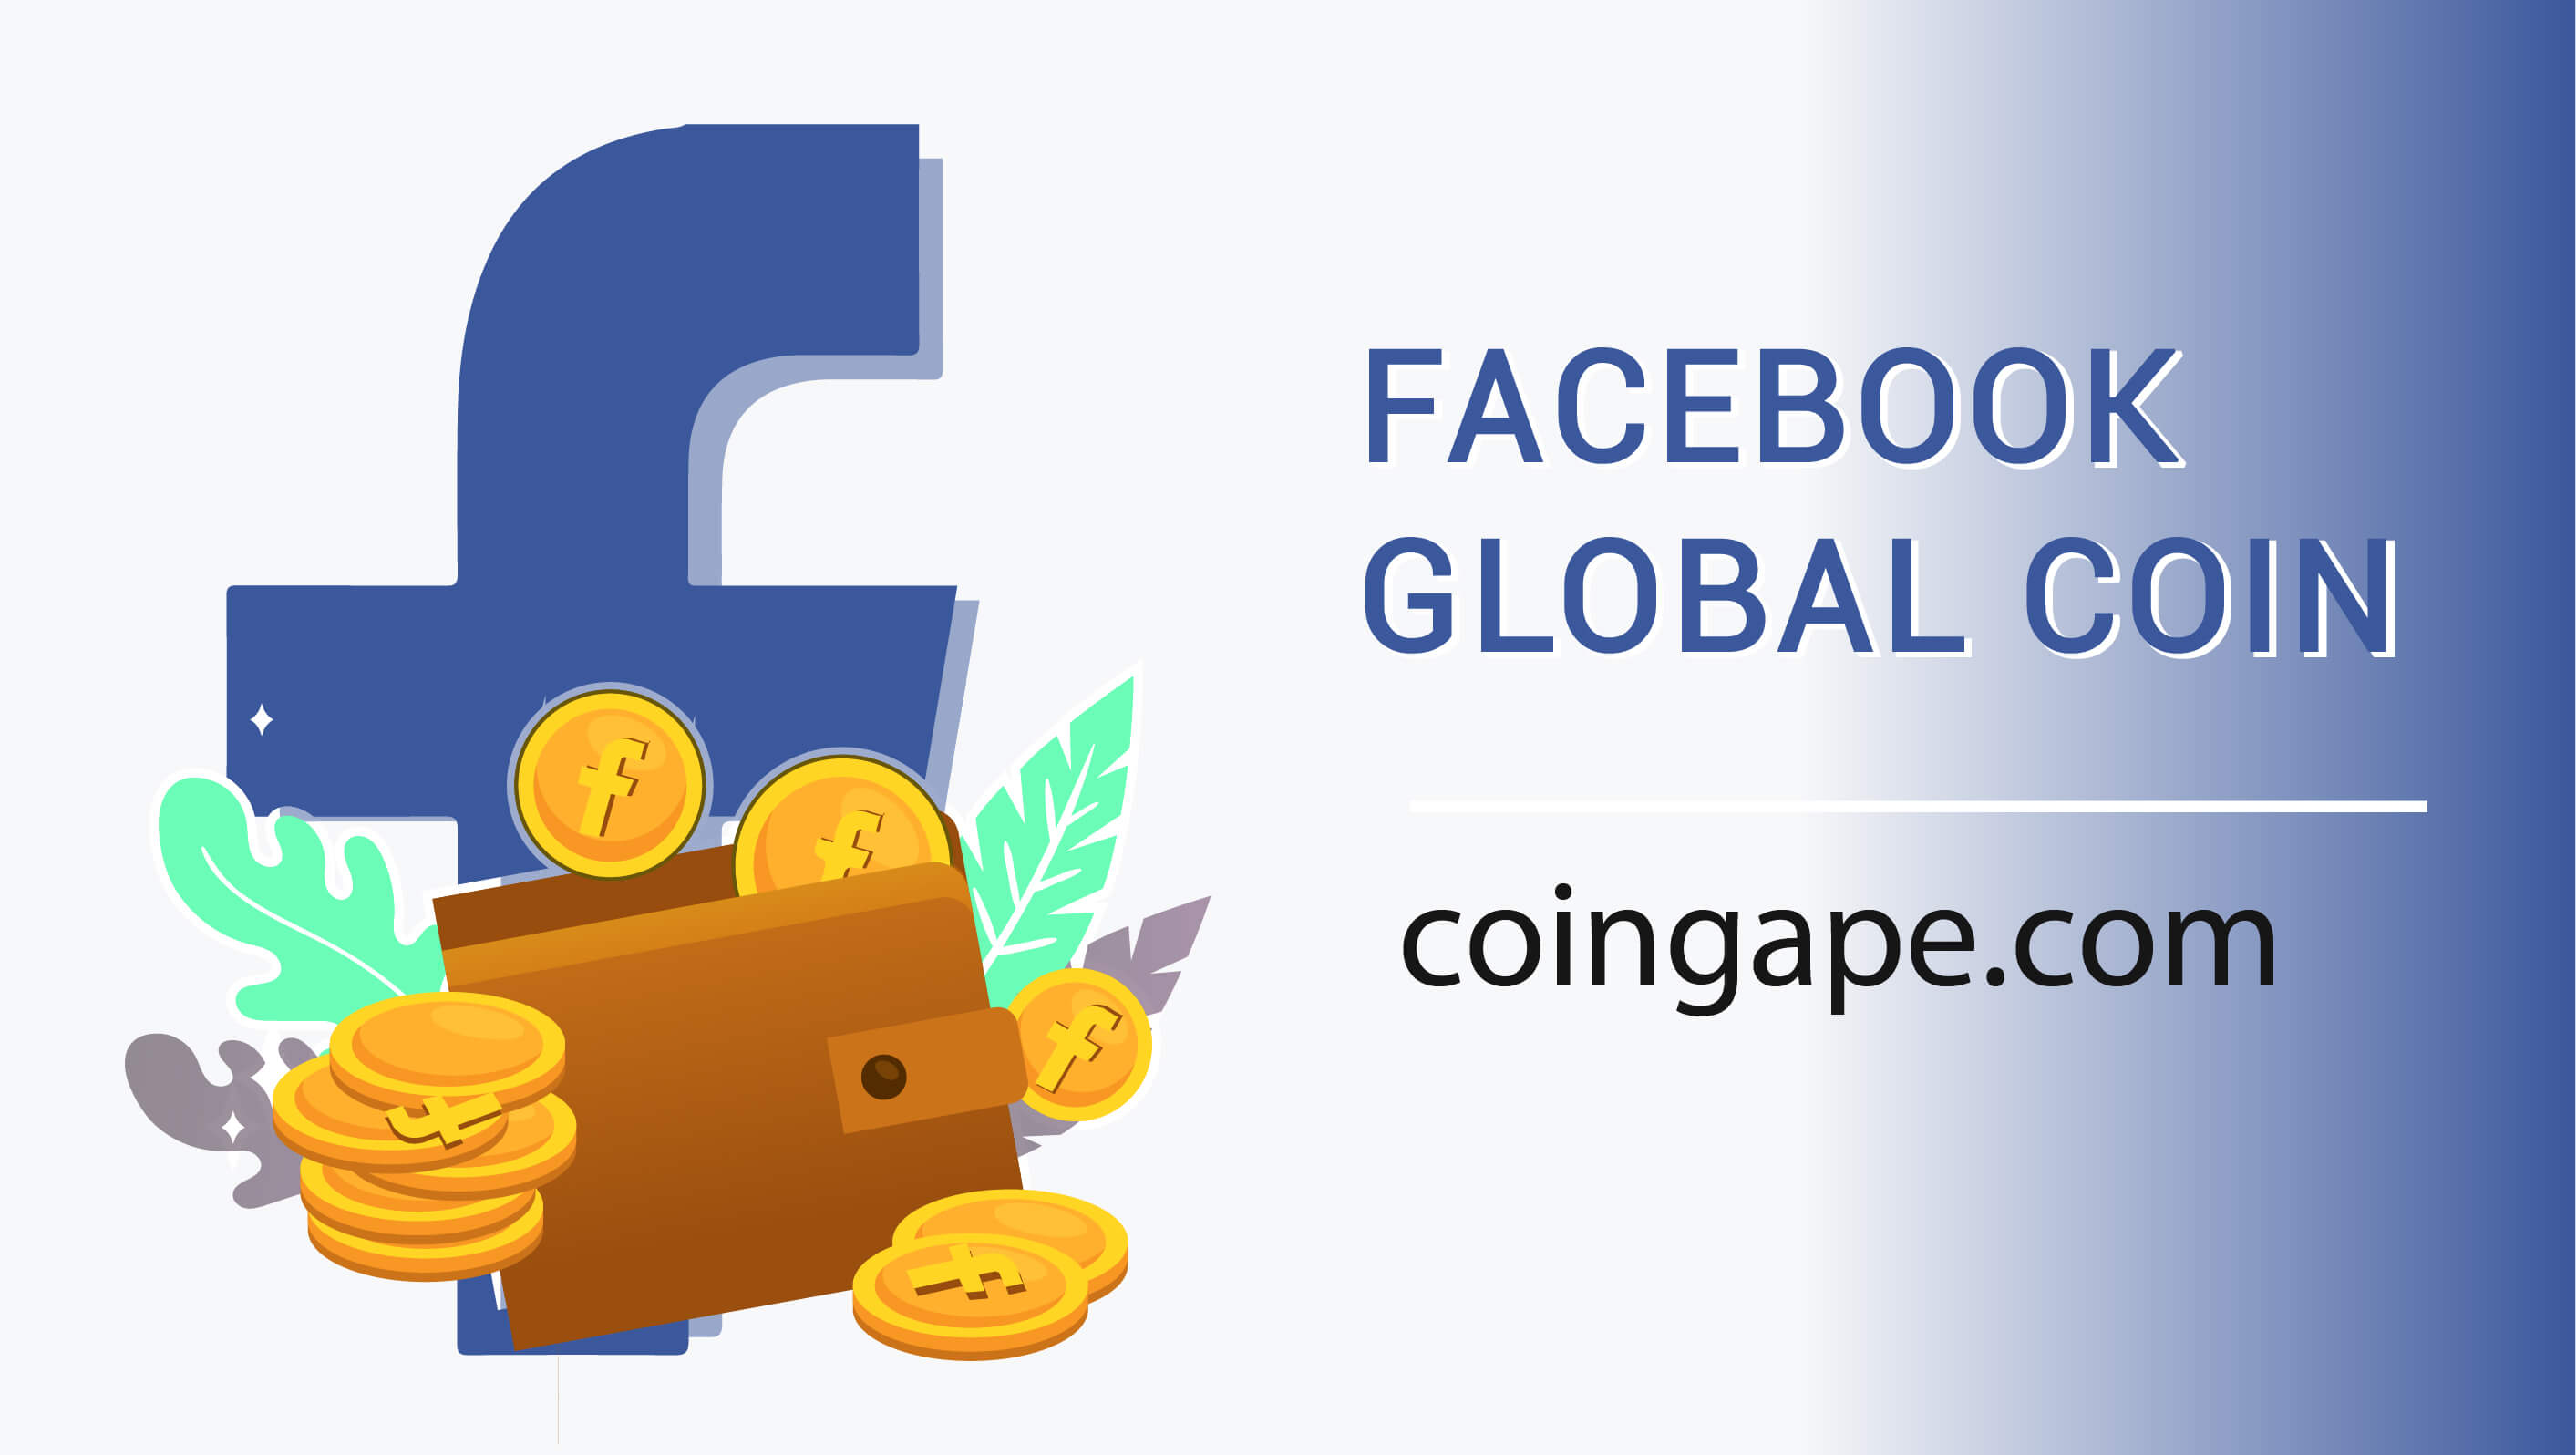 Facebook's GlobalCoin and Project Libra: Explained in a Nutshell